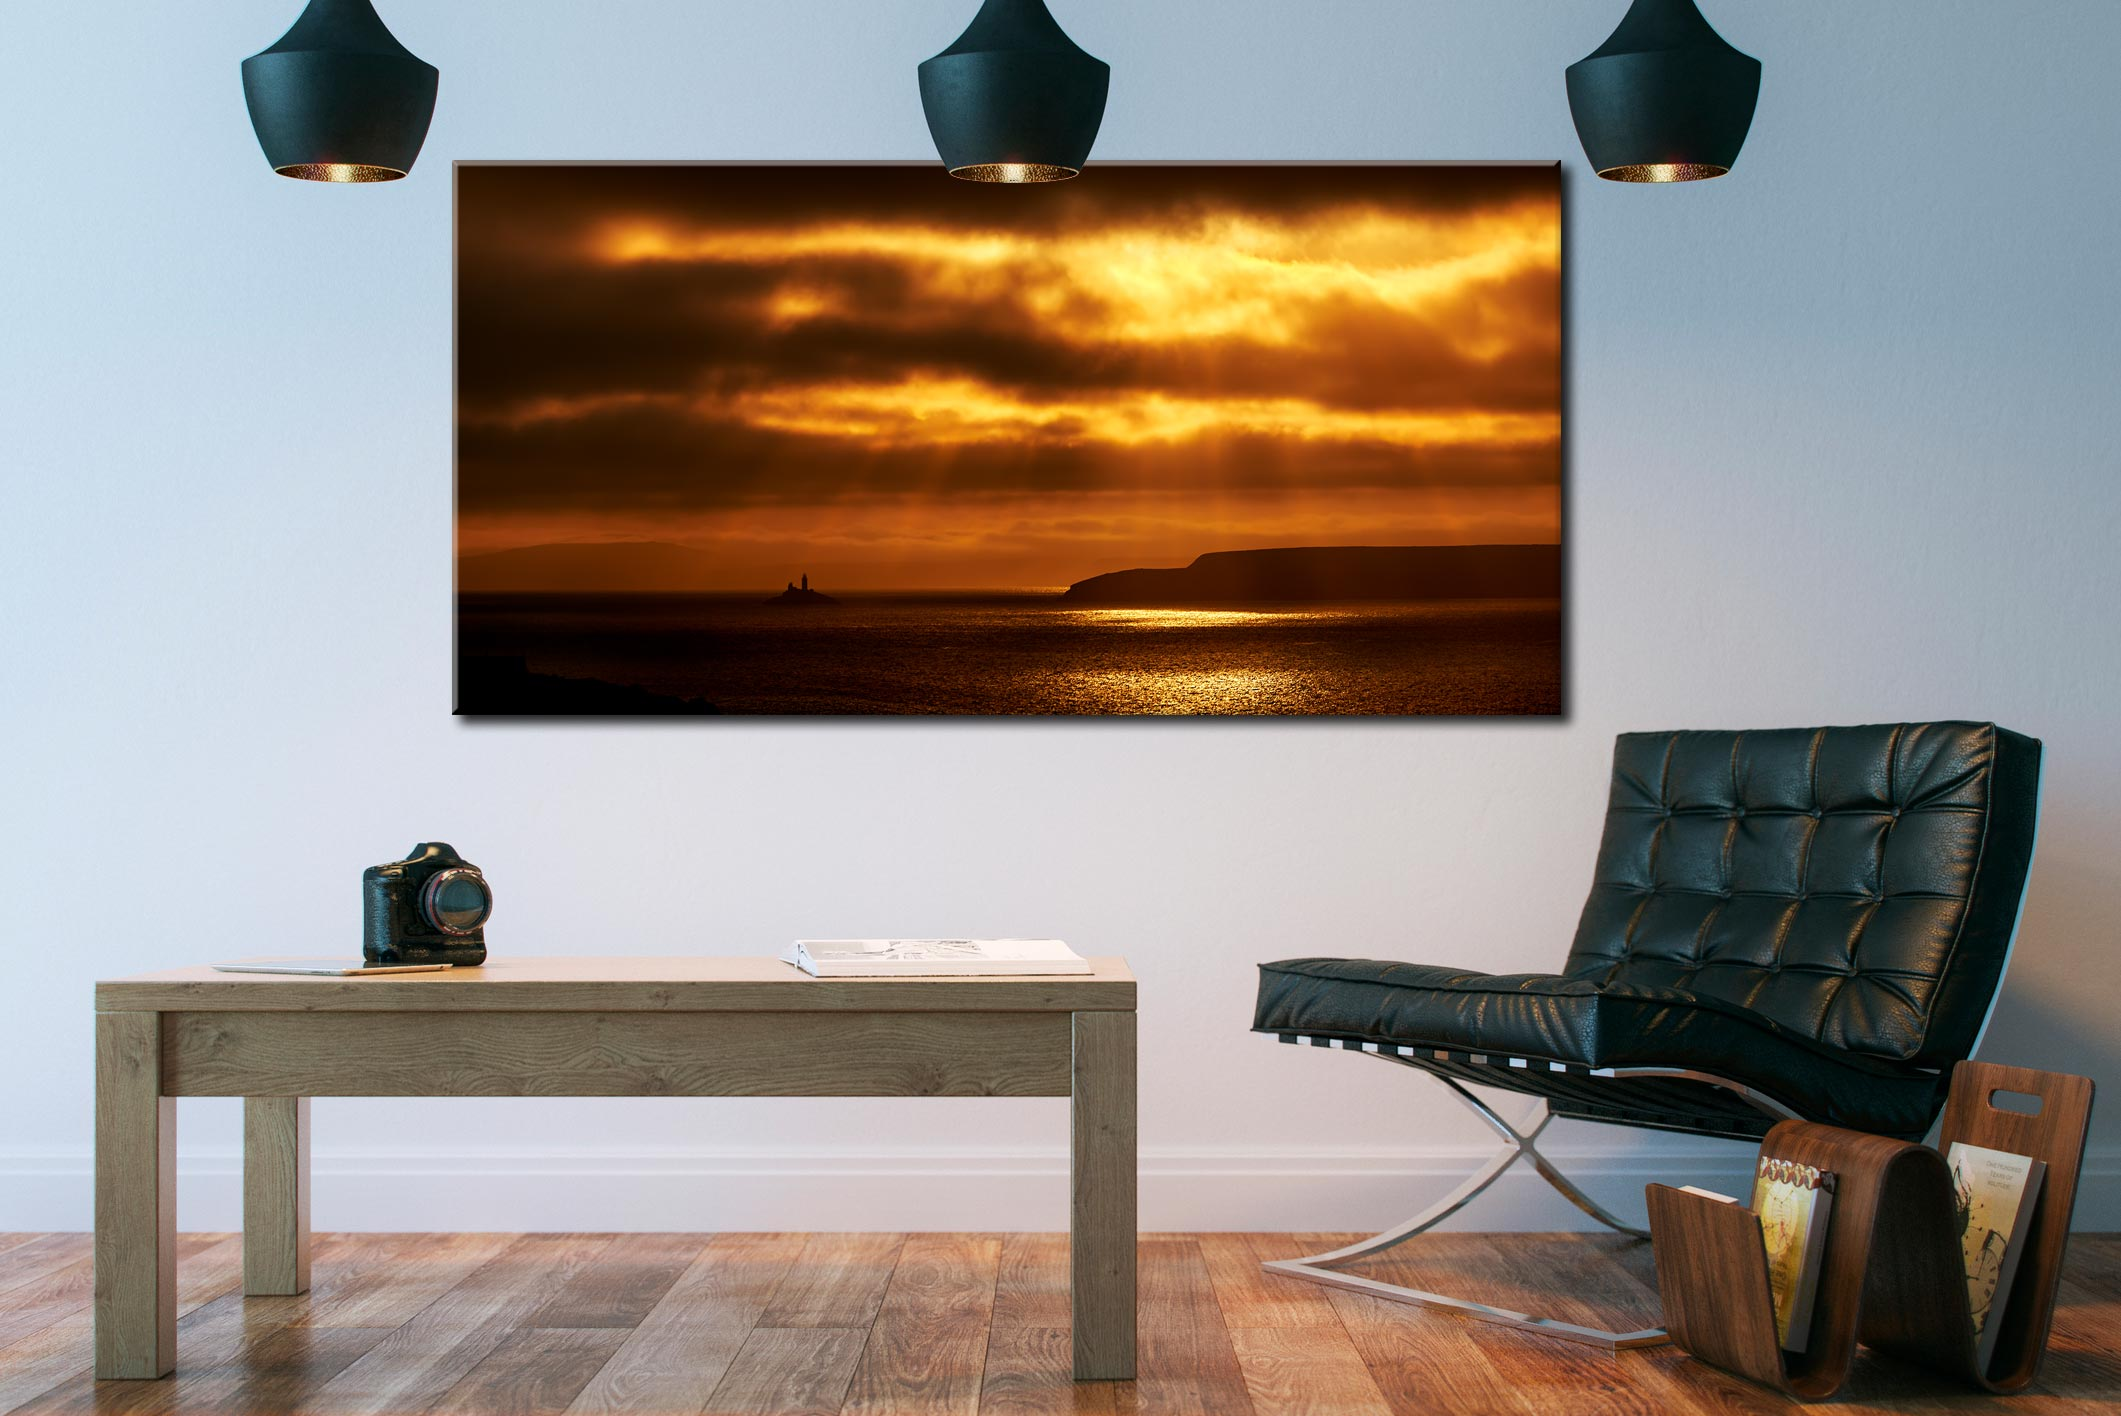 Golden Lighthouse St Ives Bay - Canvas Print on Wall